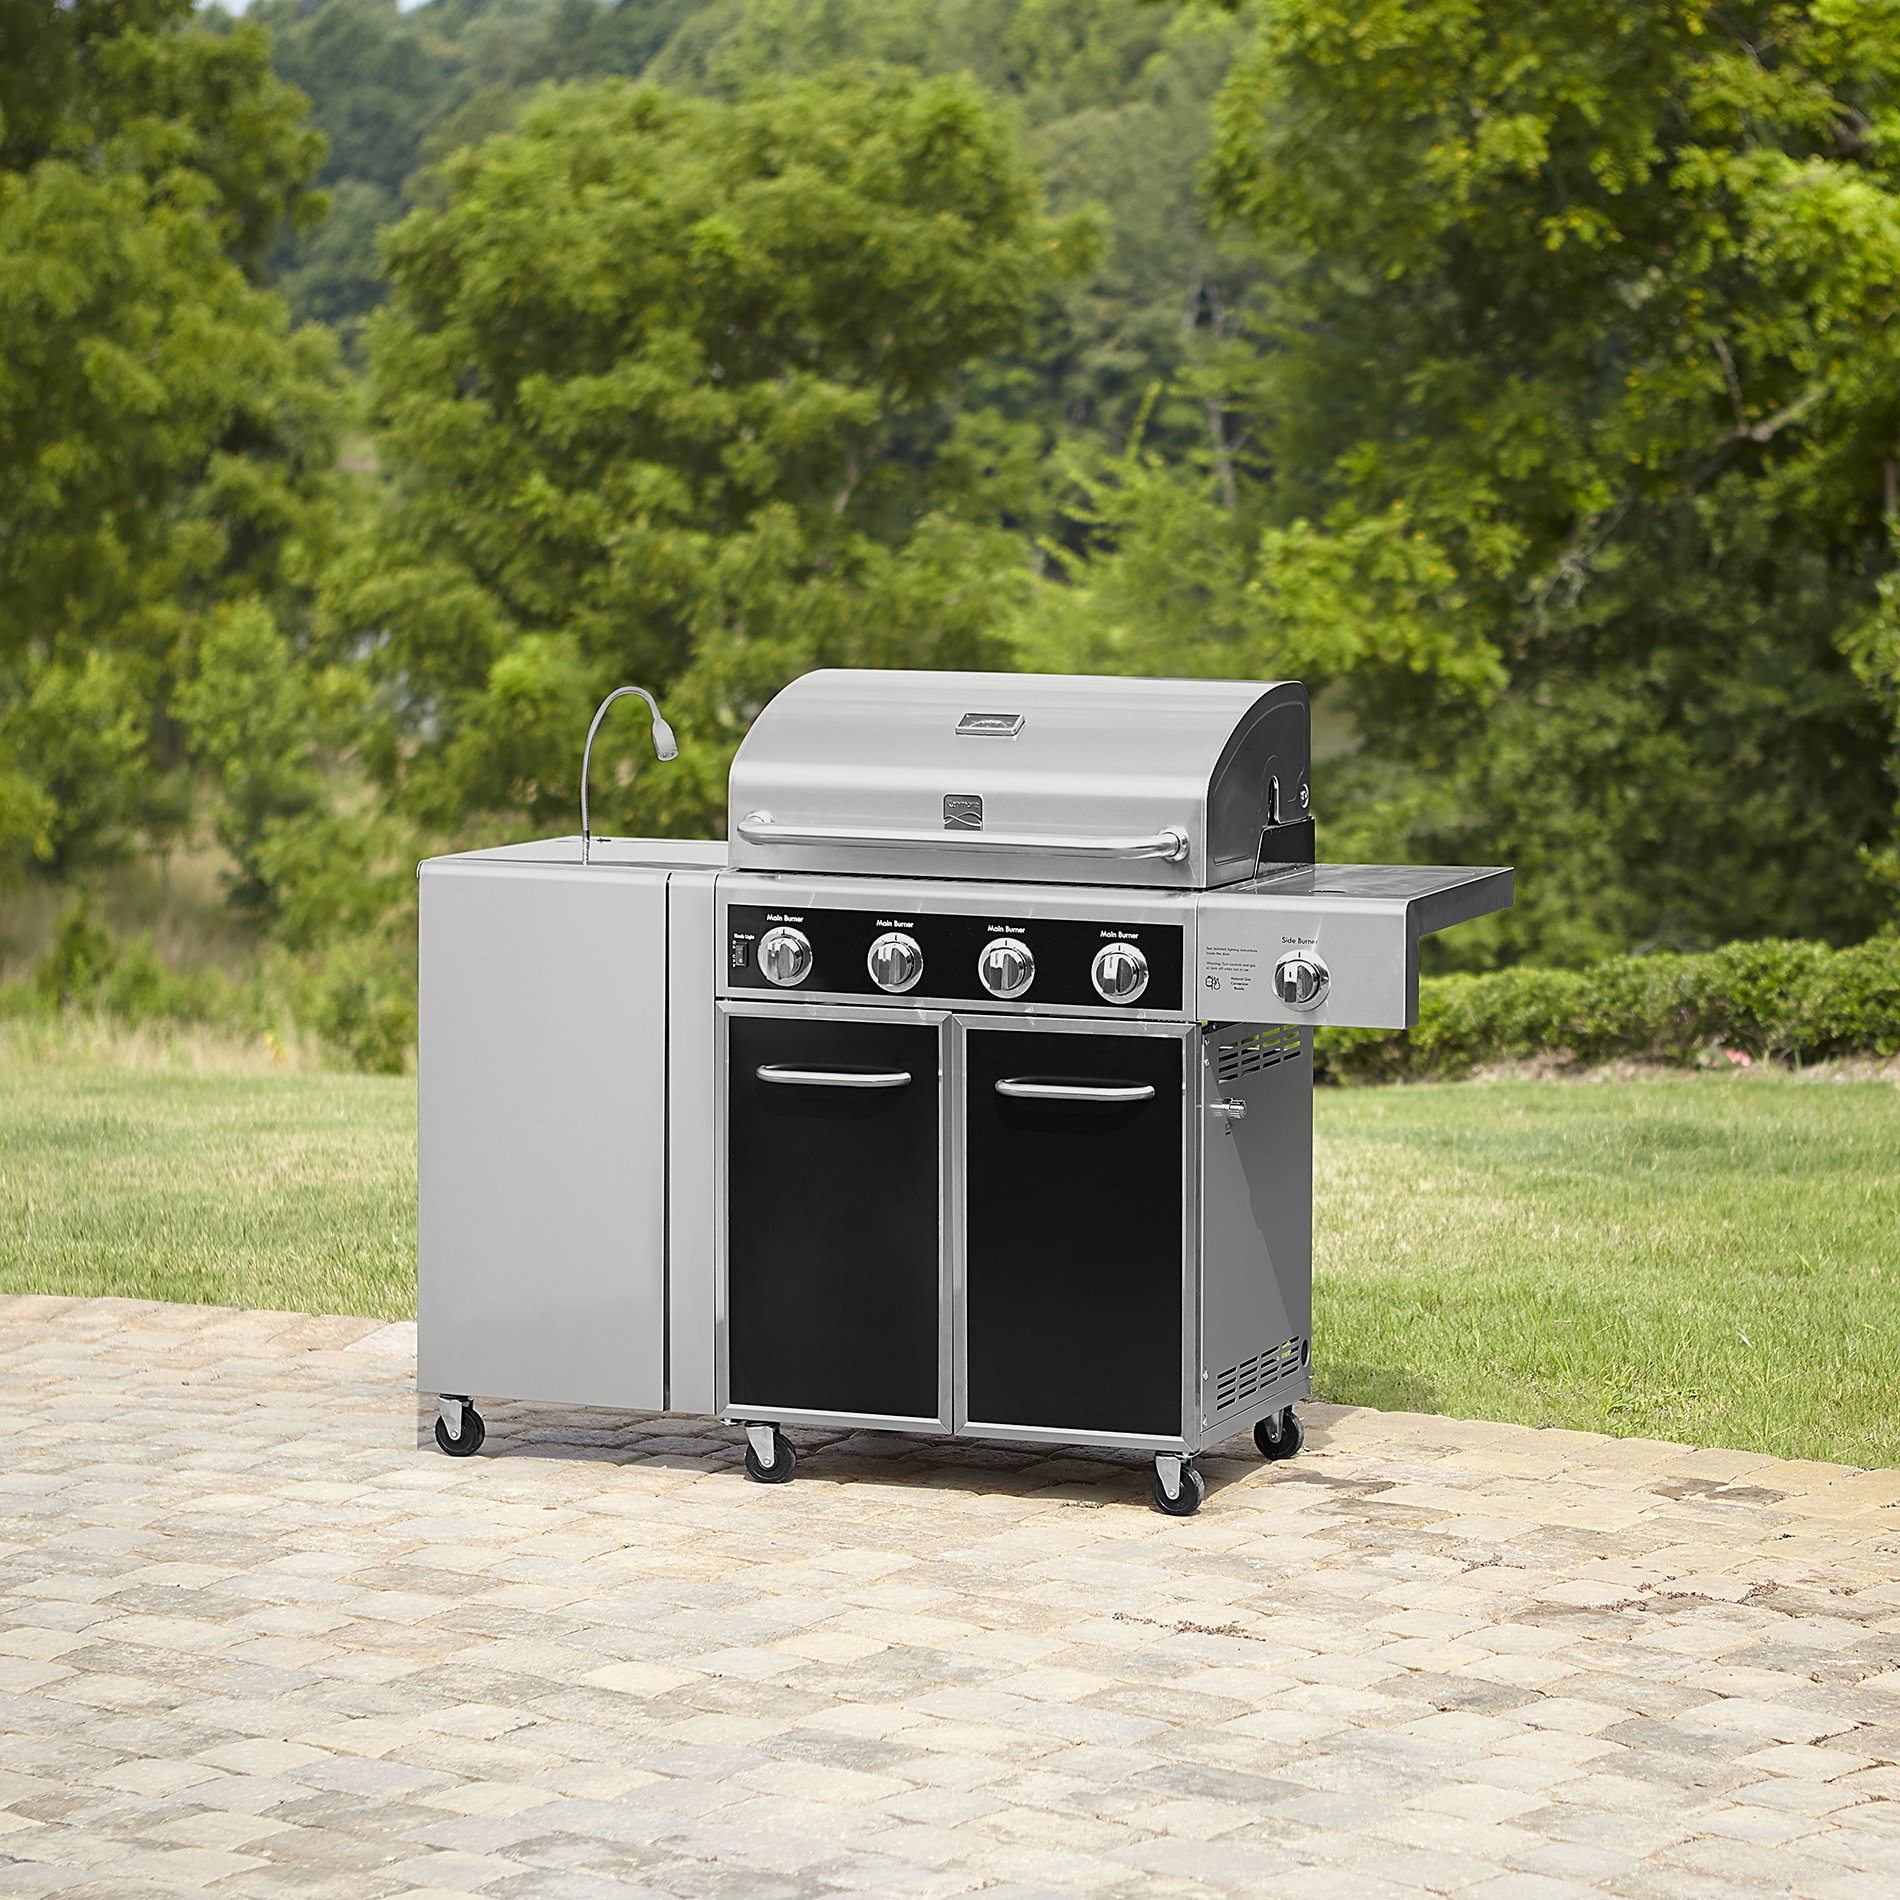 Kenmore 4 Burner Gas Grill with folding side table, Lit knobs, and folding table light